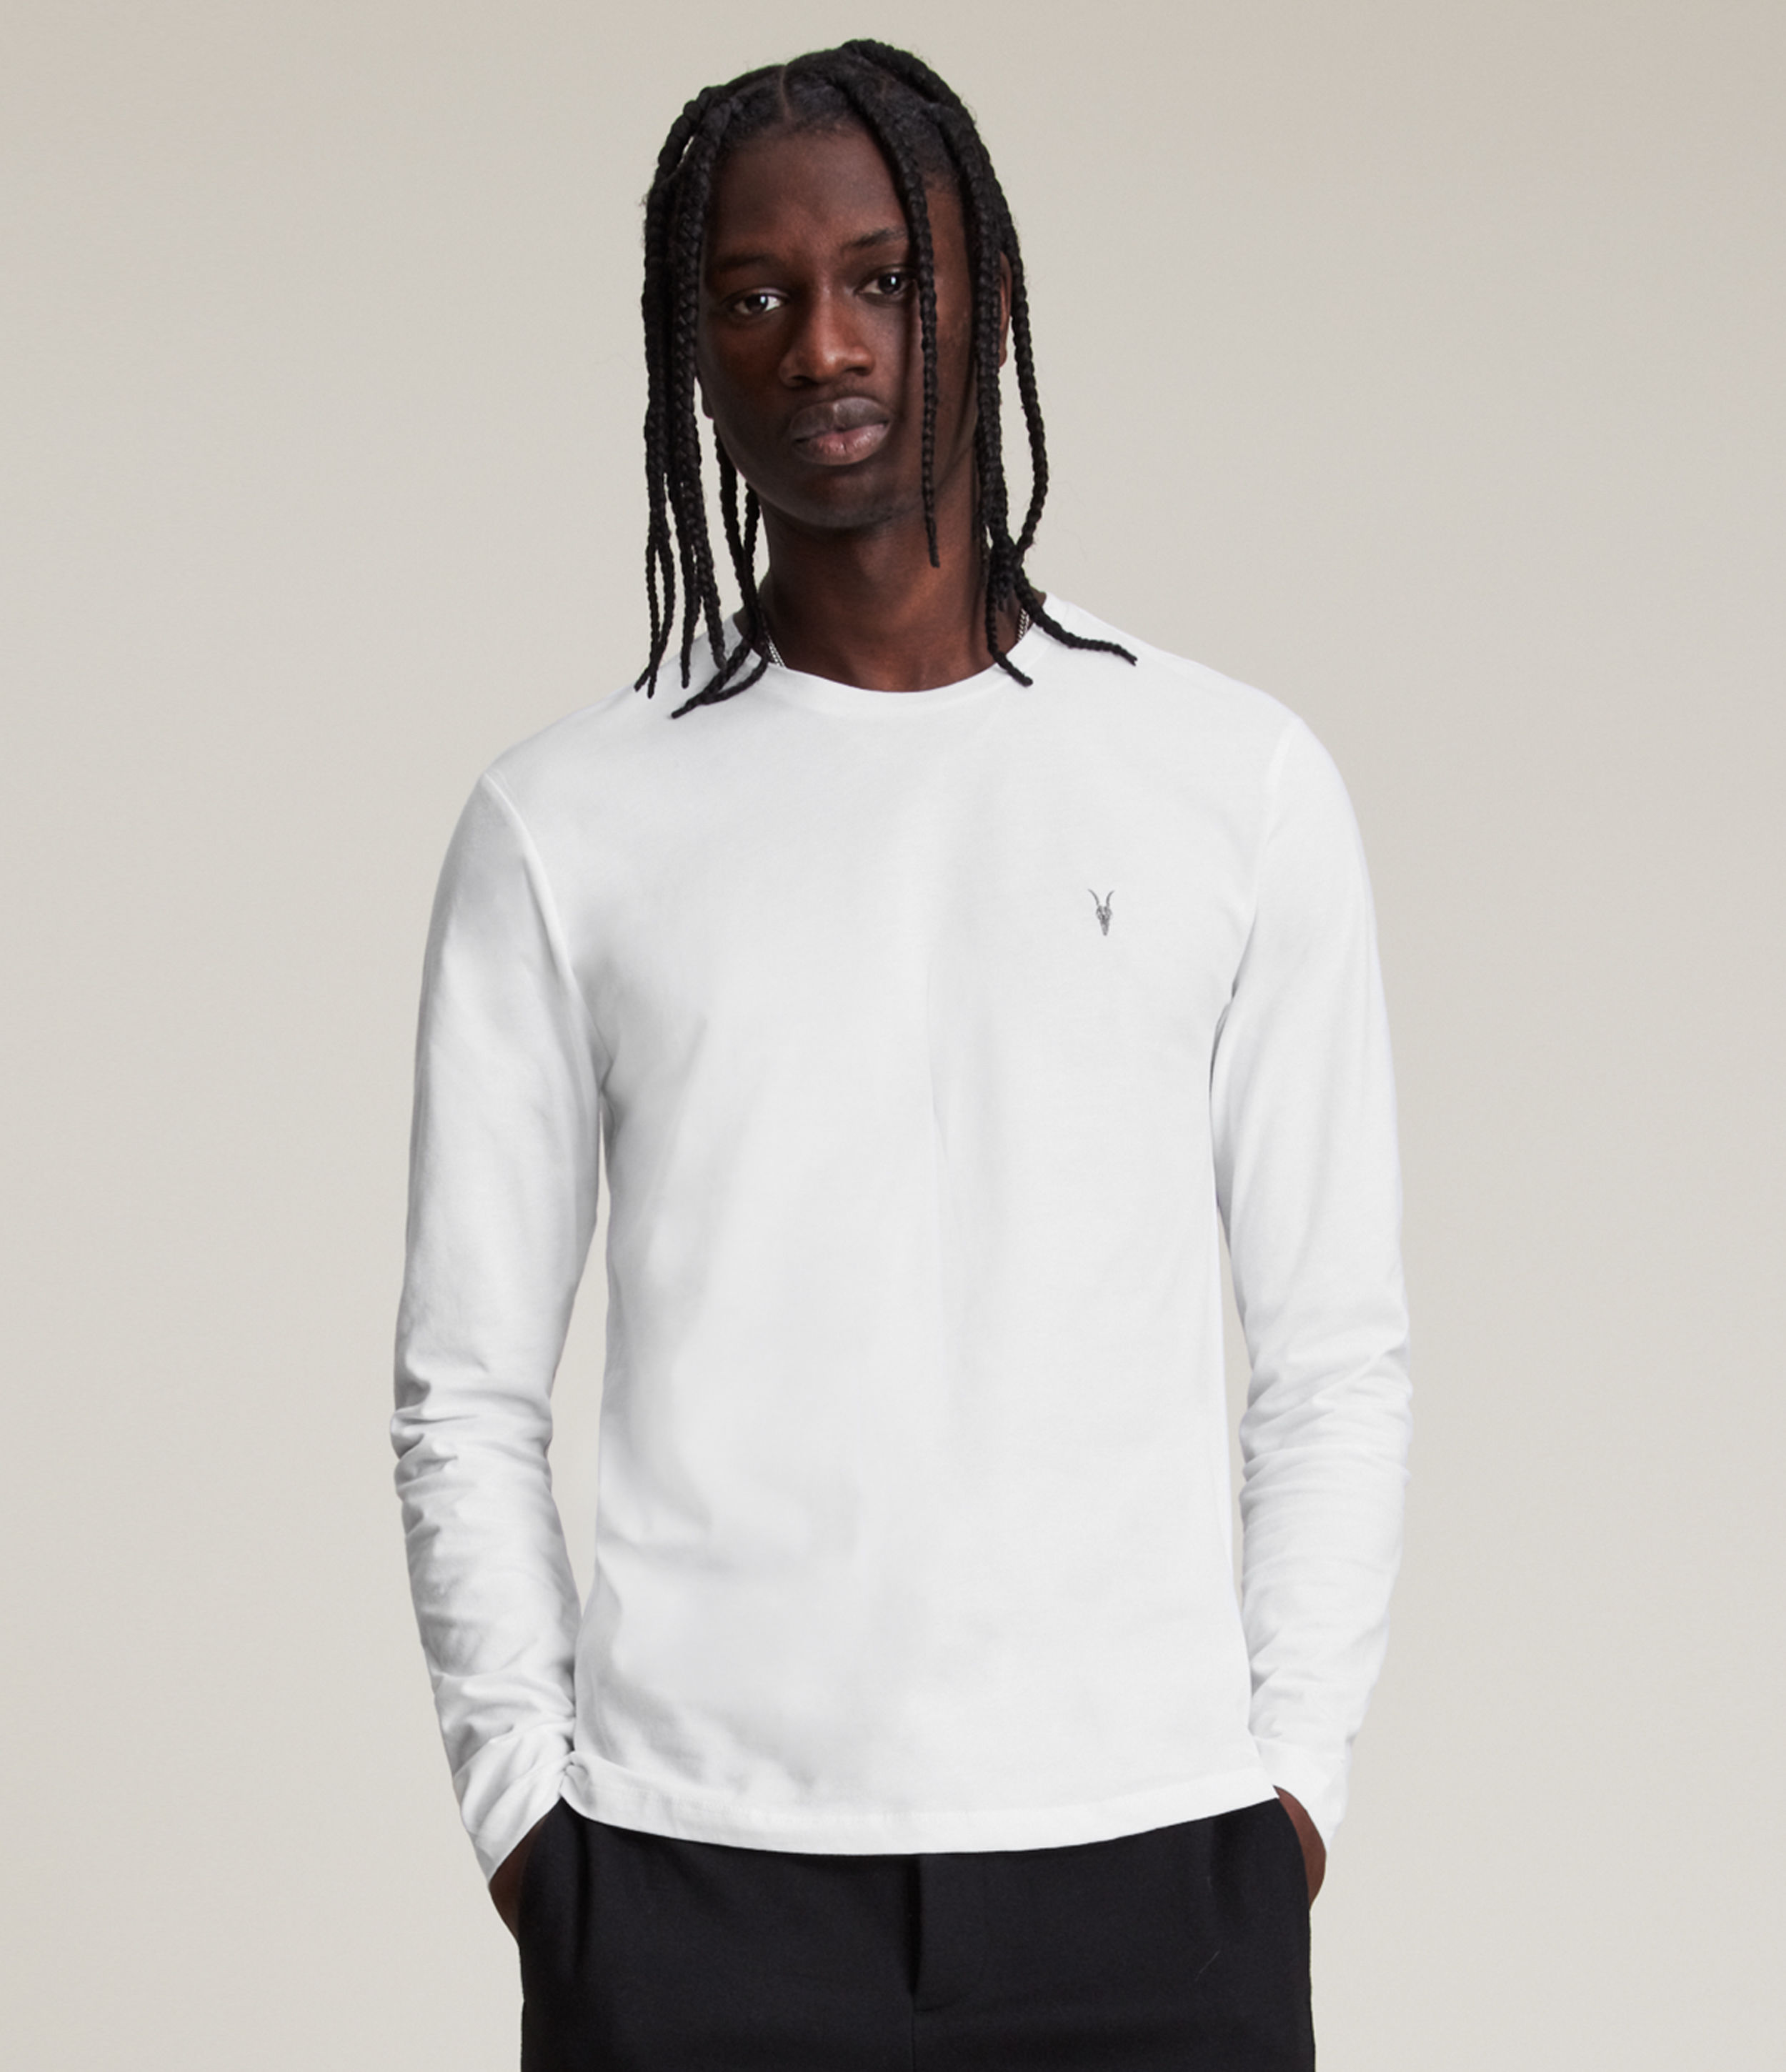 AllSaints Men's Cotton Regular Fit Slim Brace Tonic Long Sleeve Crew T-Shirt, White, Size: XS